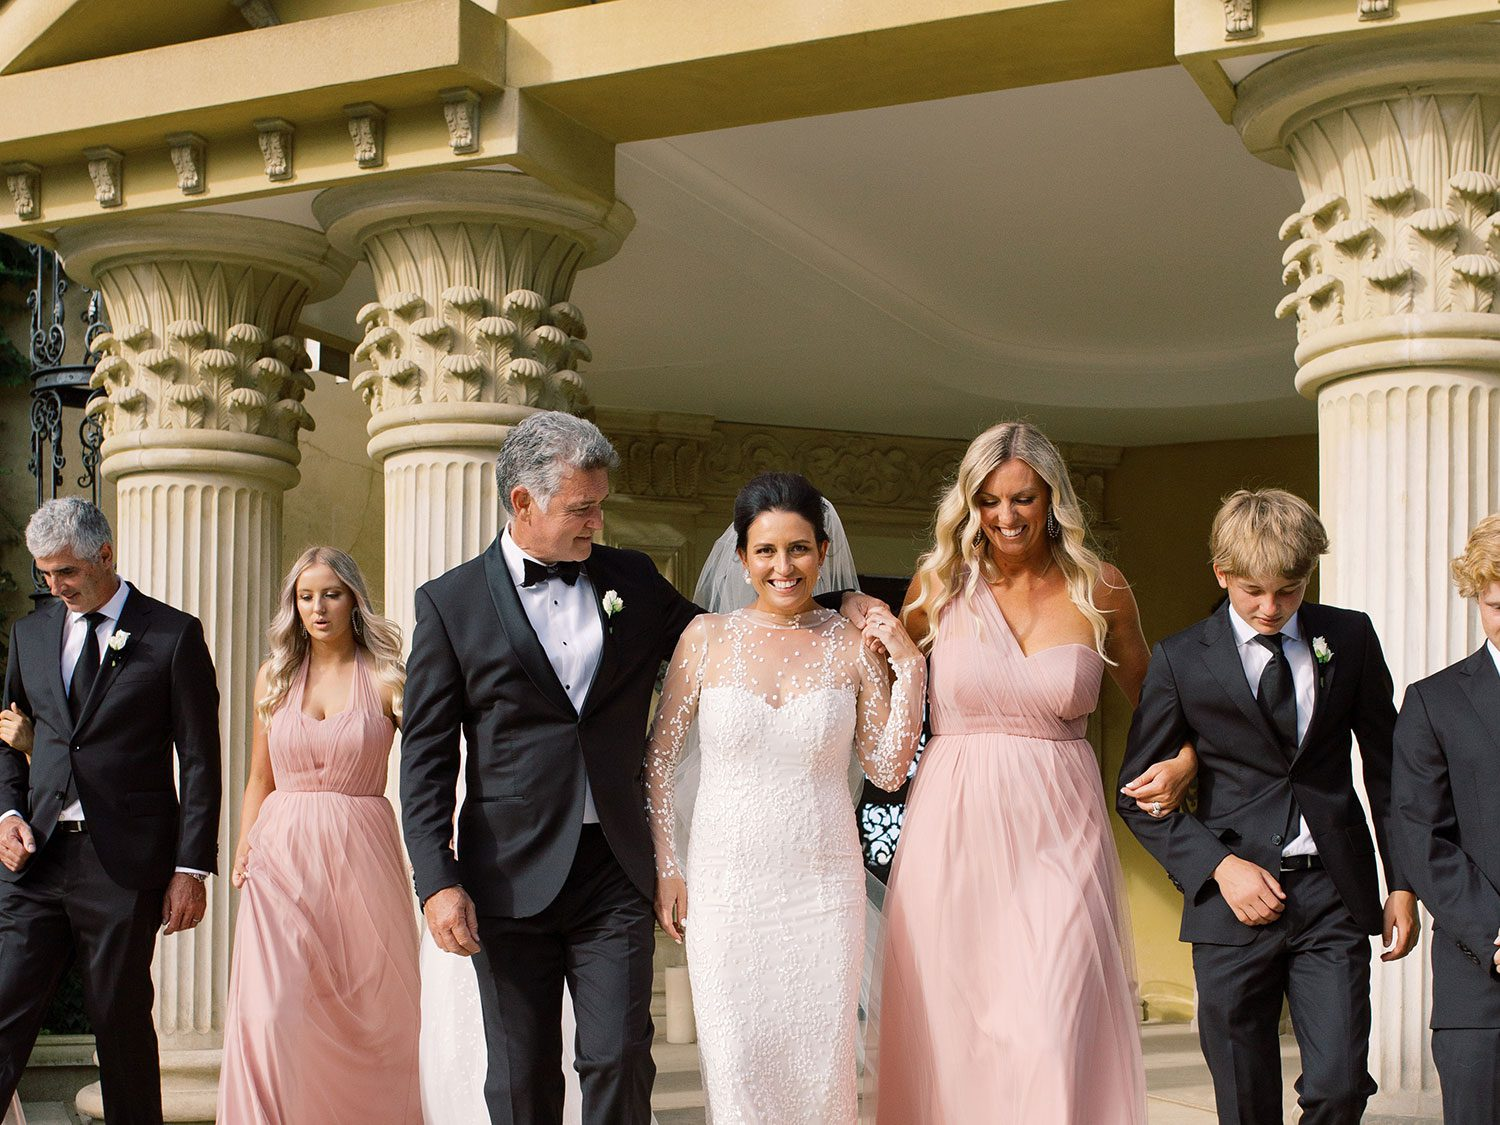 Bride wearing bespoke gown by Auckland wedding dress designer Vinka Design, with a high neckline and delicate spotted embroidery - with groom and bridal party walking